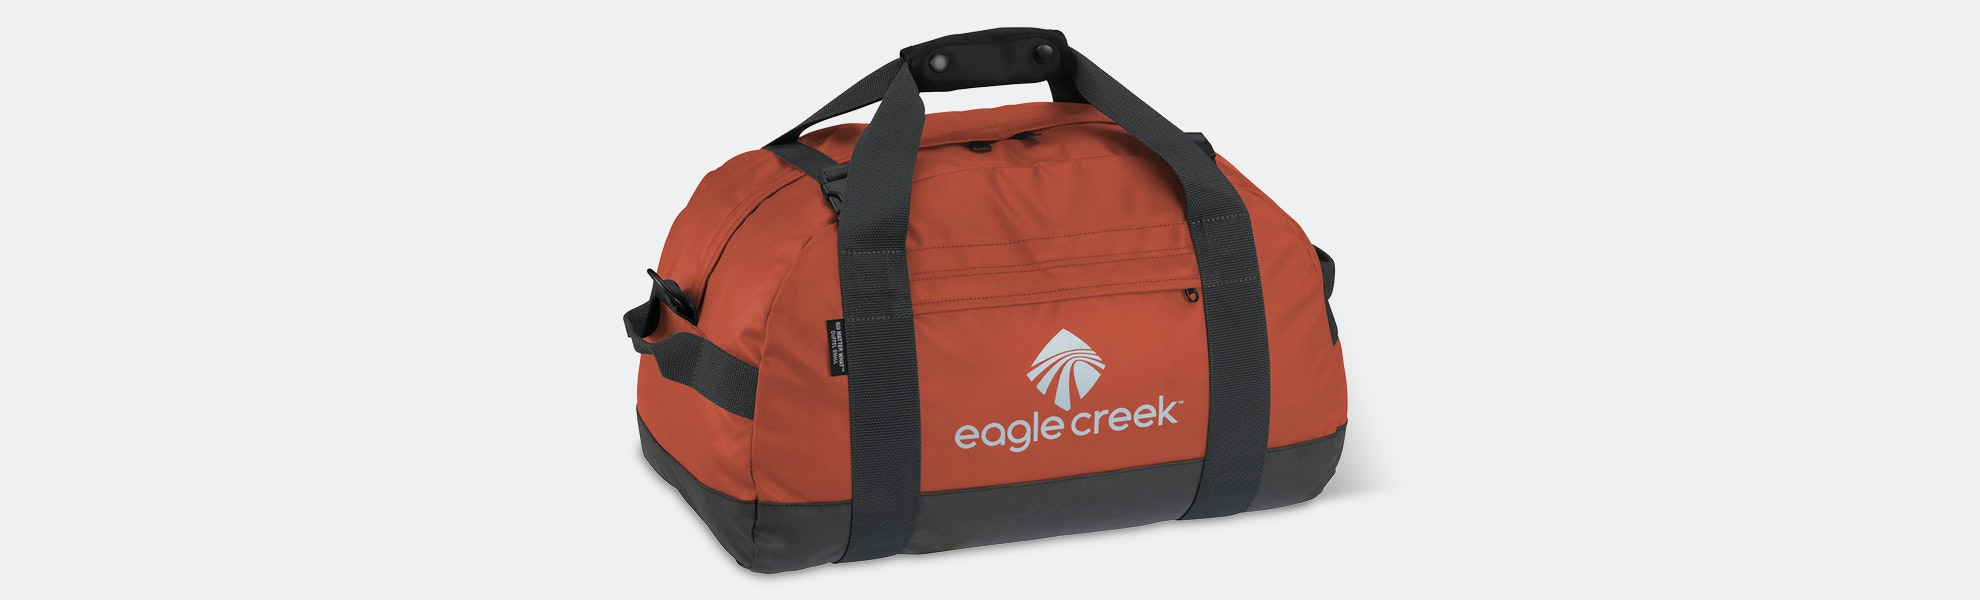 Eagle Creek No Matter What Duffels